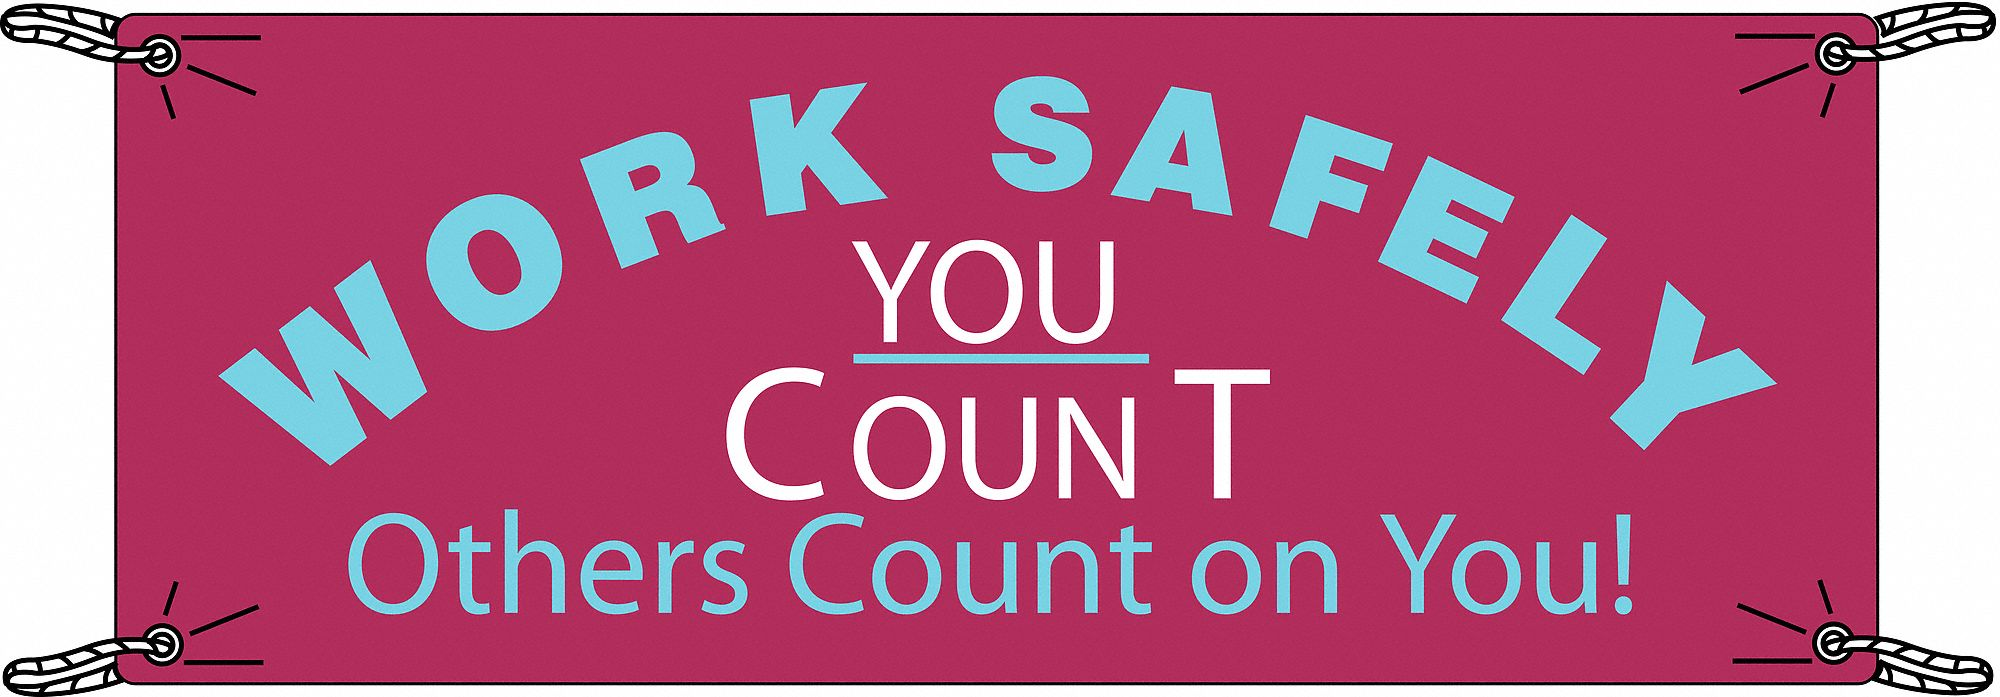 Safety Banner,  Safety Banner Legend You Count Others Count On You!,  48 in x 120 in,  English